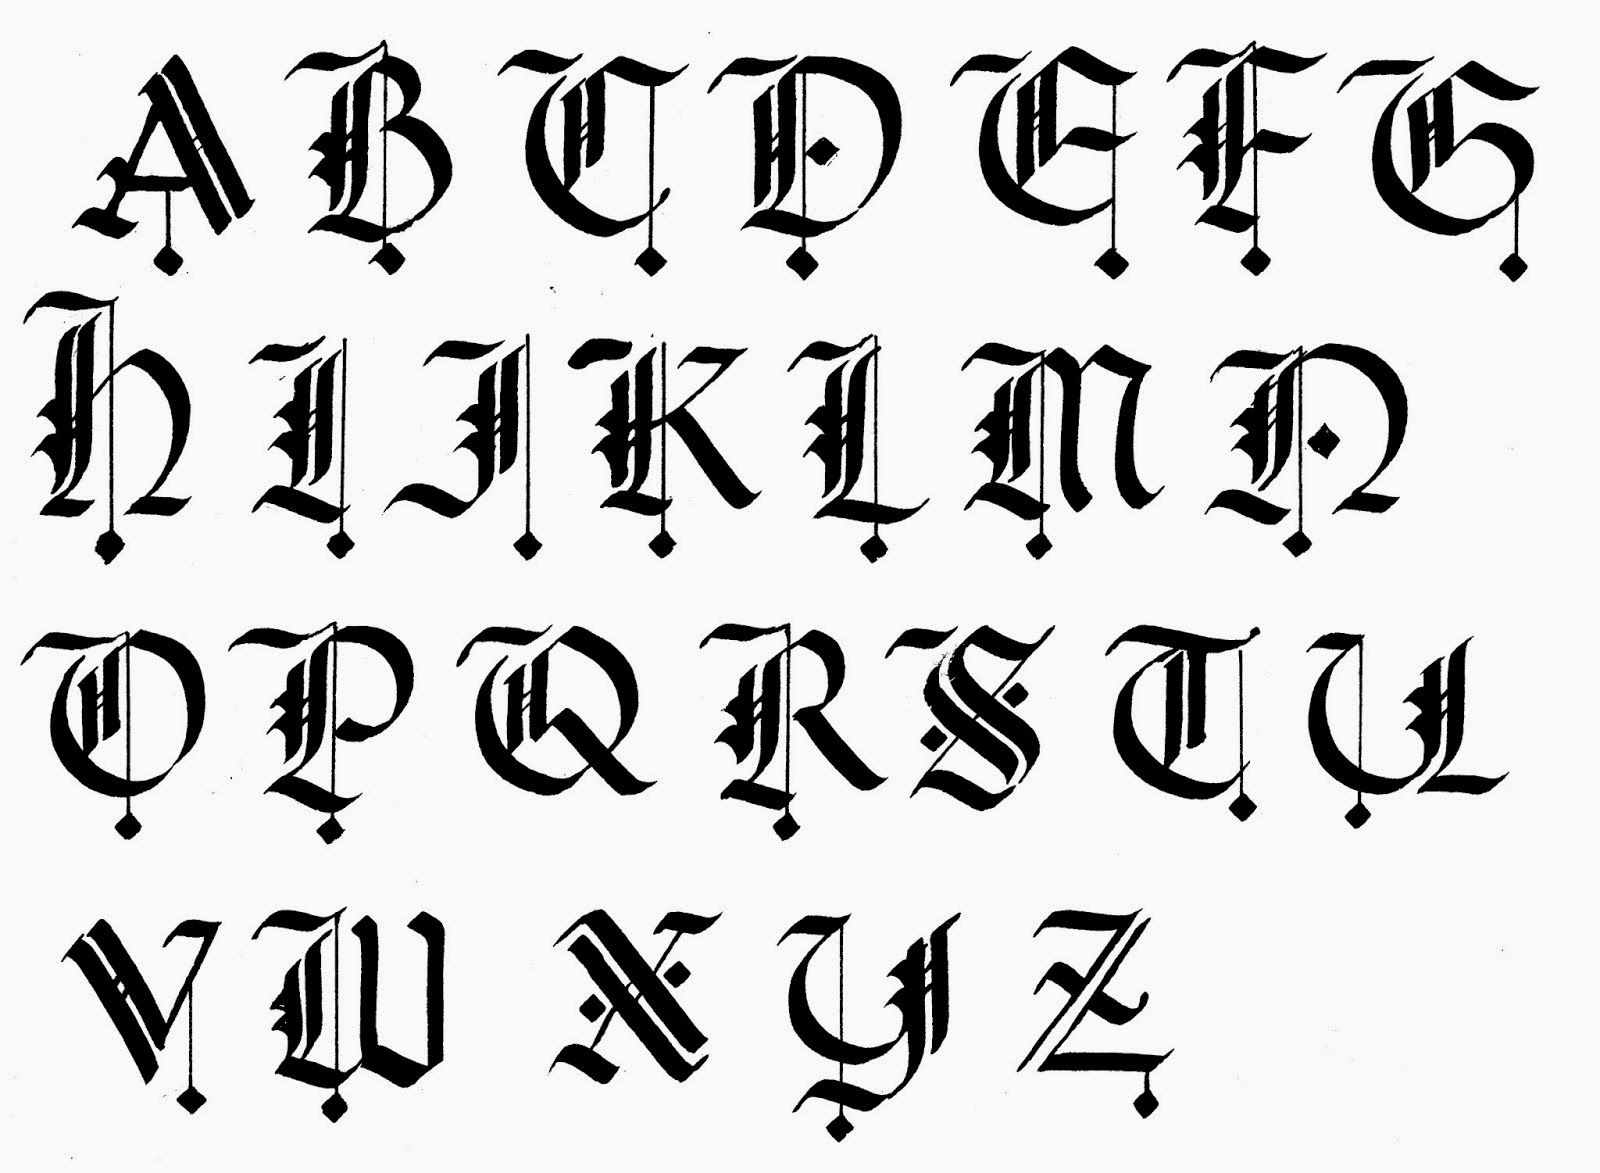 Old Calligraphy Font Free Image Result For Gothic Calligraphy Alphabet A Z